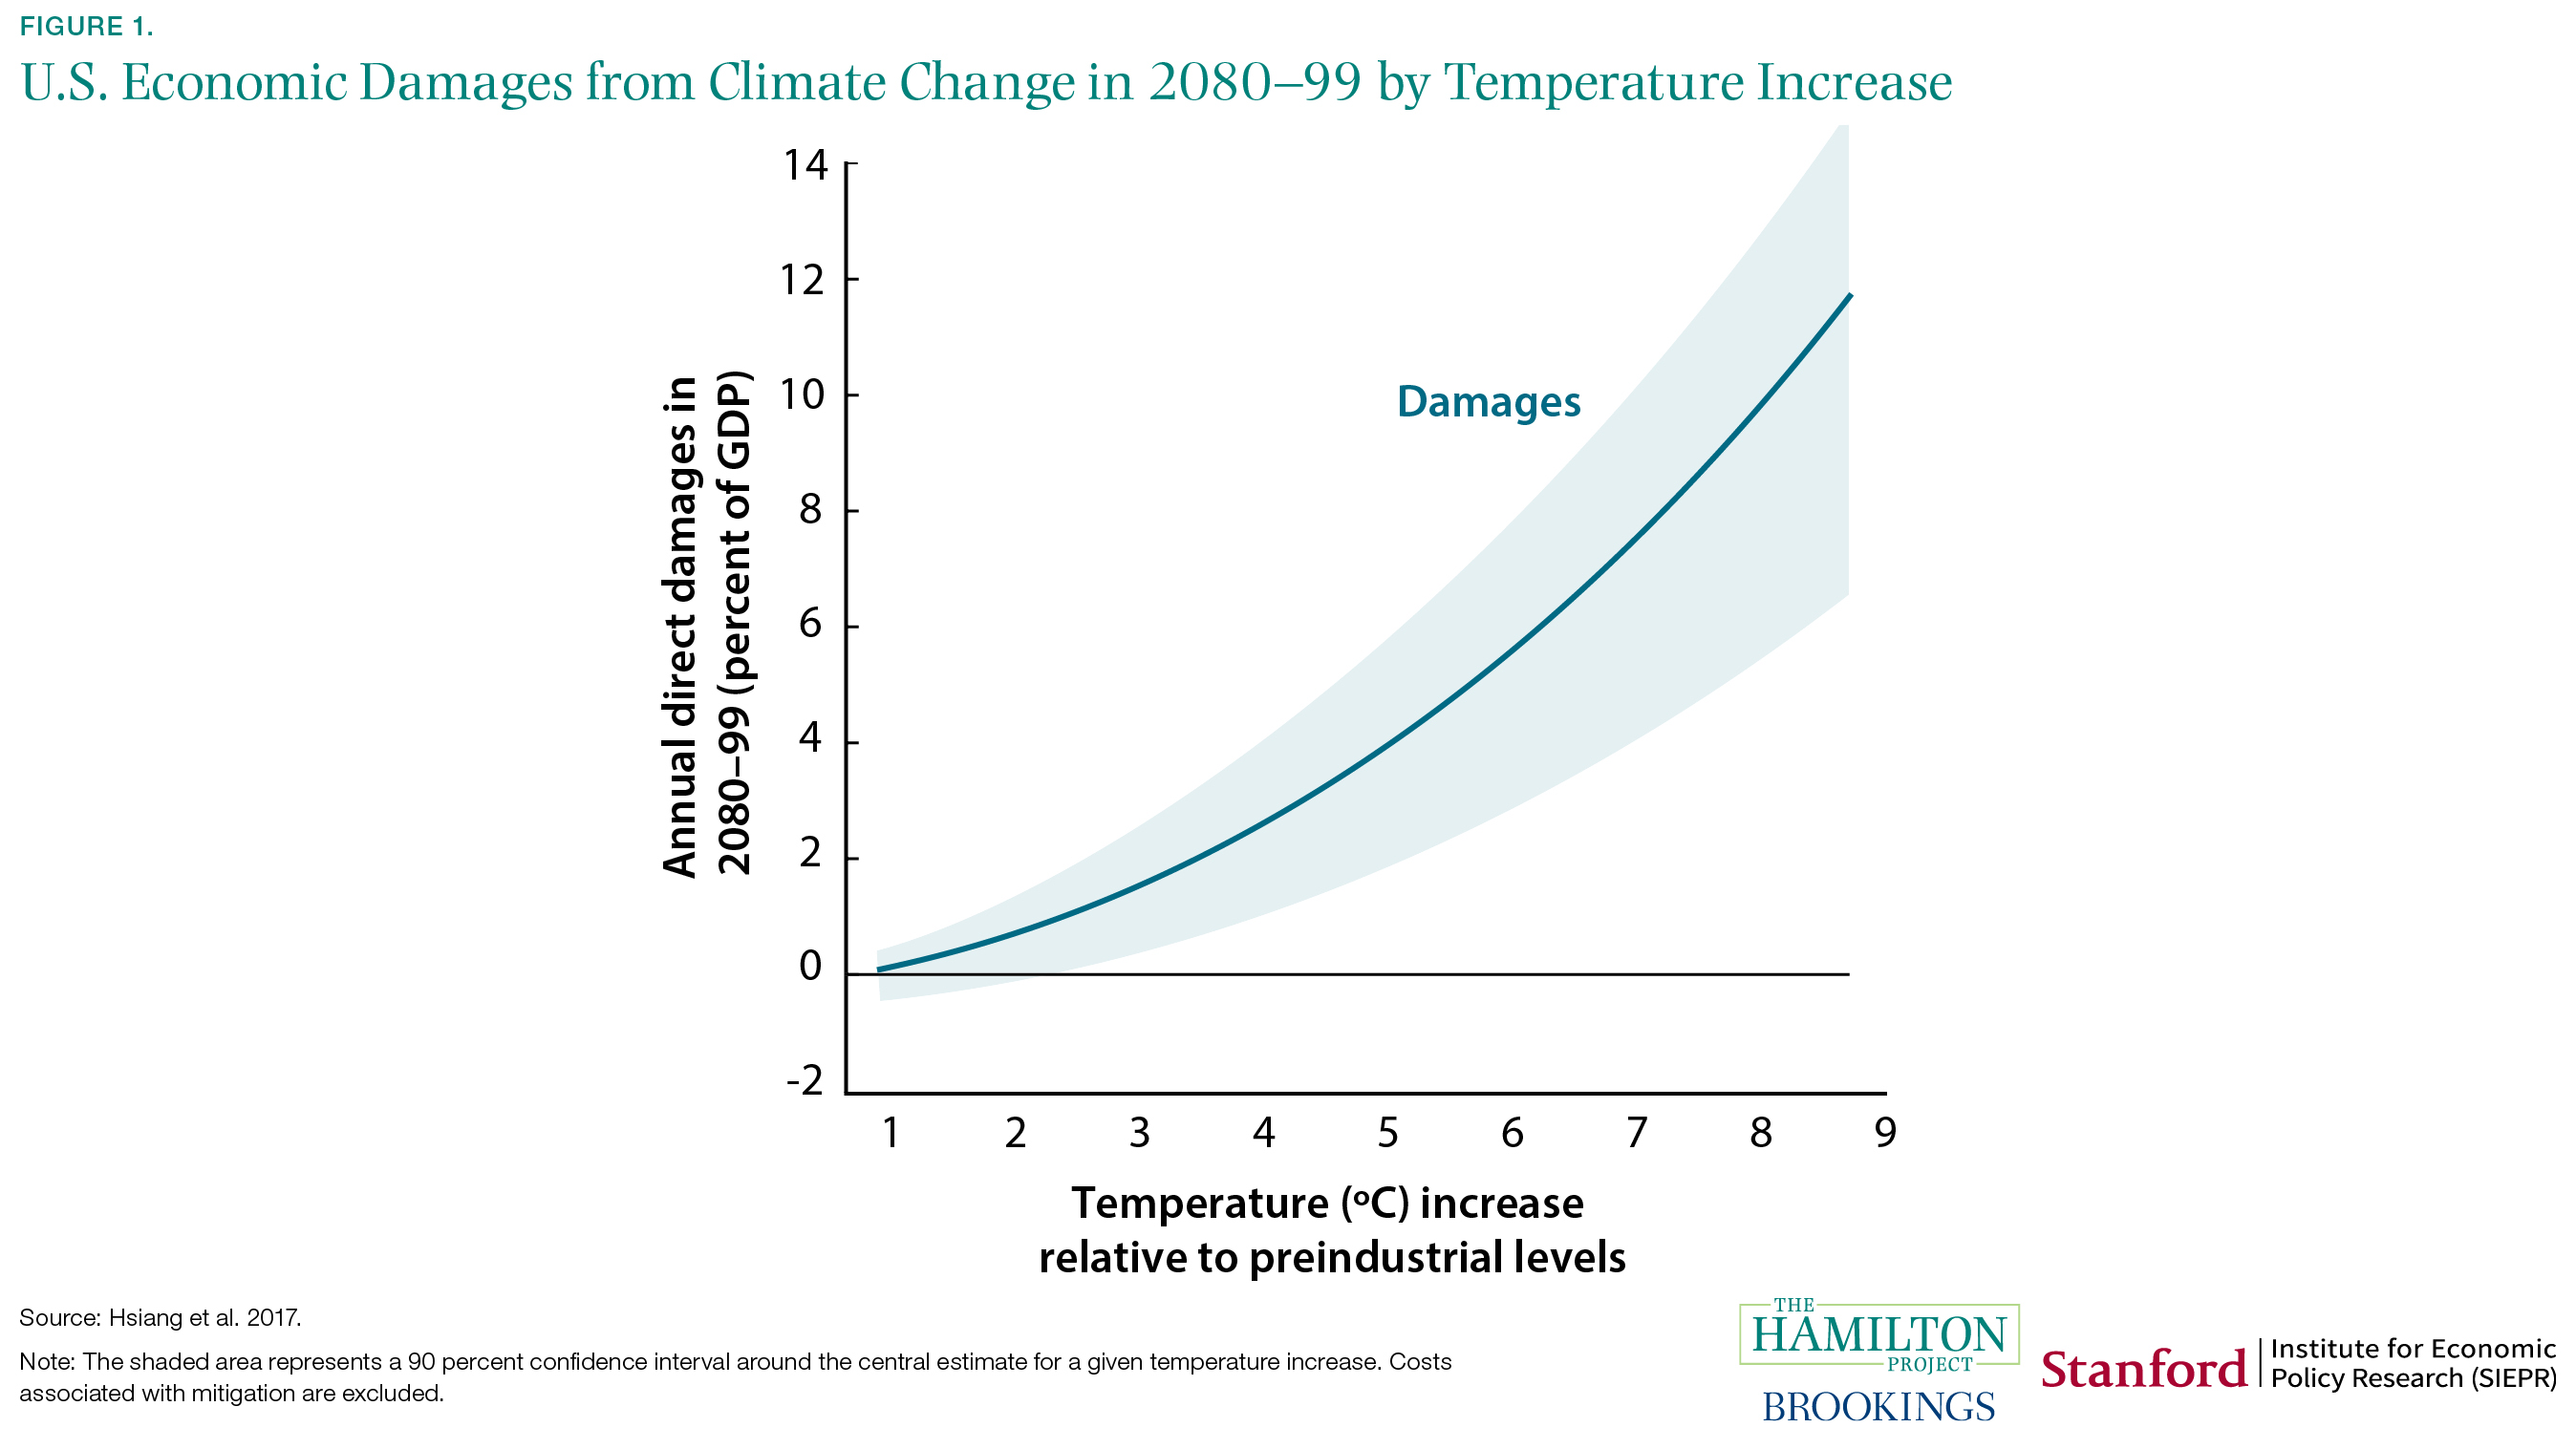 U.S. Economic Damages from Climate Change in 2080-99 by Temperature Increase